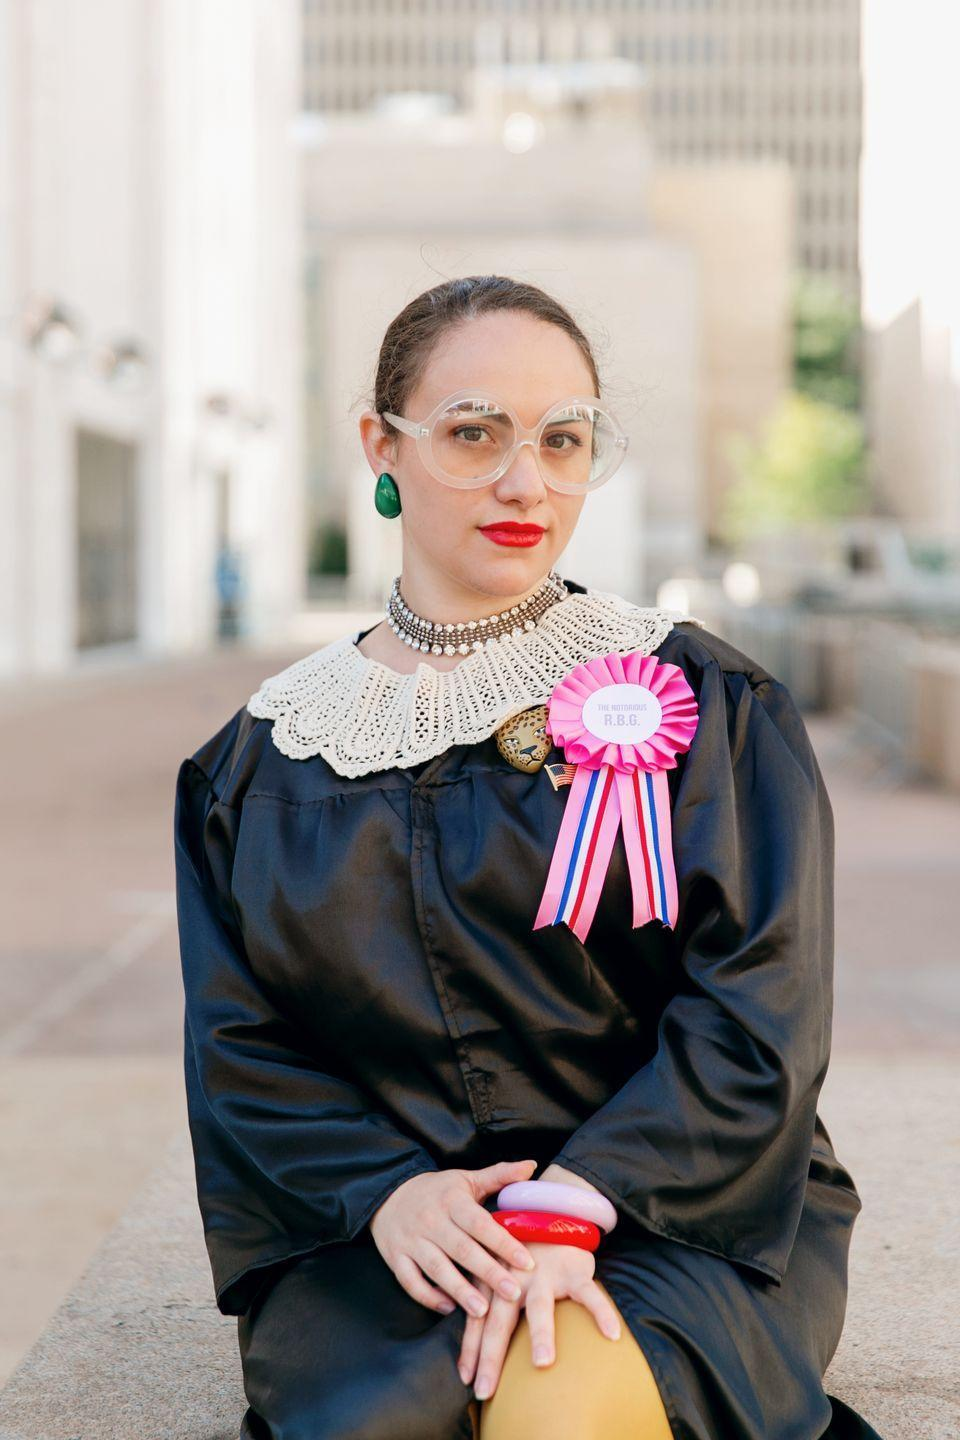 """<p>Pay homage to the second female justice of four to be confirmed to the highest court in our nation. Oversize spectacles and fun earrings make this one instantly recognizable. Pro tip: If you're really short on time, a black bathrobe works just as well as a real black robe.<br></p><p><a class=""""link rapid-noclick-resp"""" href=""""https://www.amazon.com/GradPlaza-Economic-Finish-inches-59-511/dp/B01GJIV82K?tag=syn-yahoo-20&ascsubtag=%5Bartid%7C10050.g.4571%5Bsrc%7Cyahoo-us"""" rel=""""nofollow noopener"""" target=""""_blank"""" data-ylk=""""slk:SHOP ROBES"""">SHOP ROBES</a> </p>"""